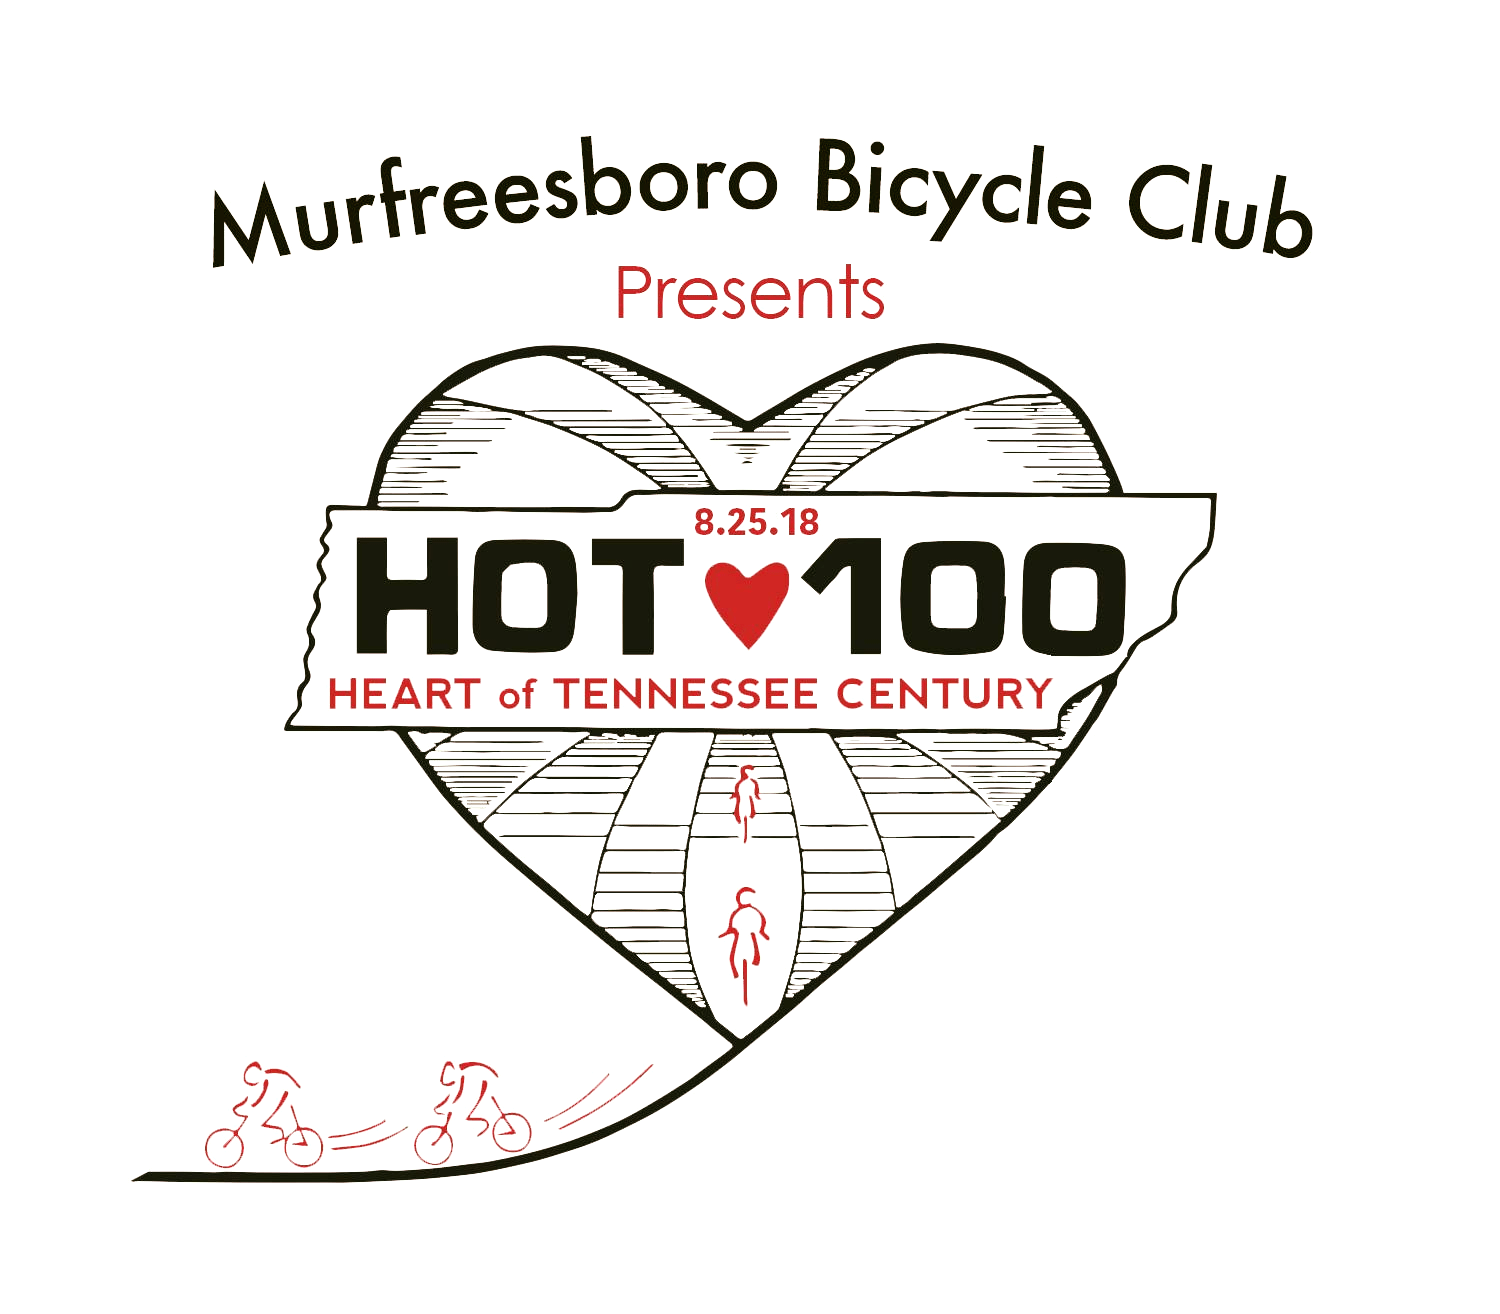 Community Care to be site of the 2018 HOT 100